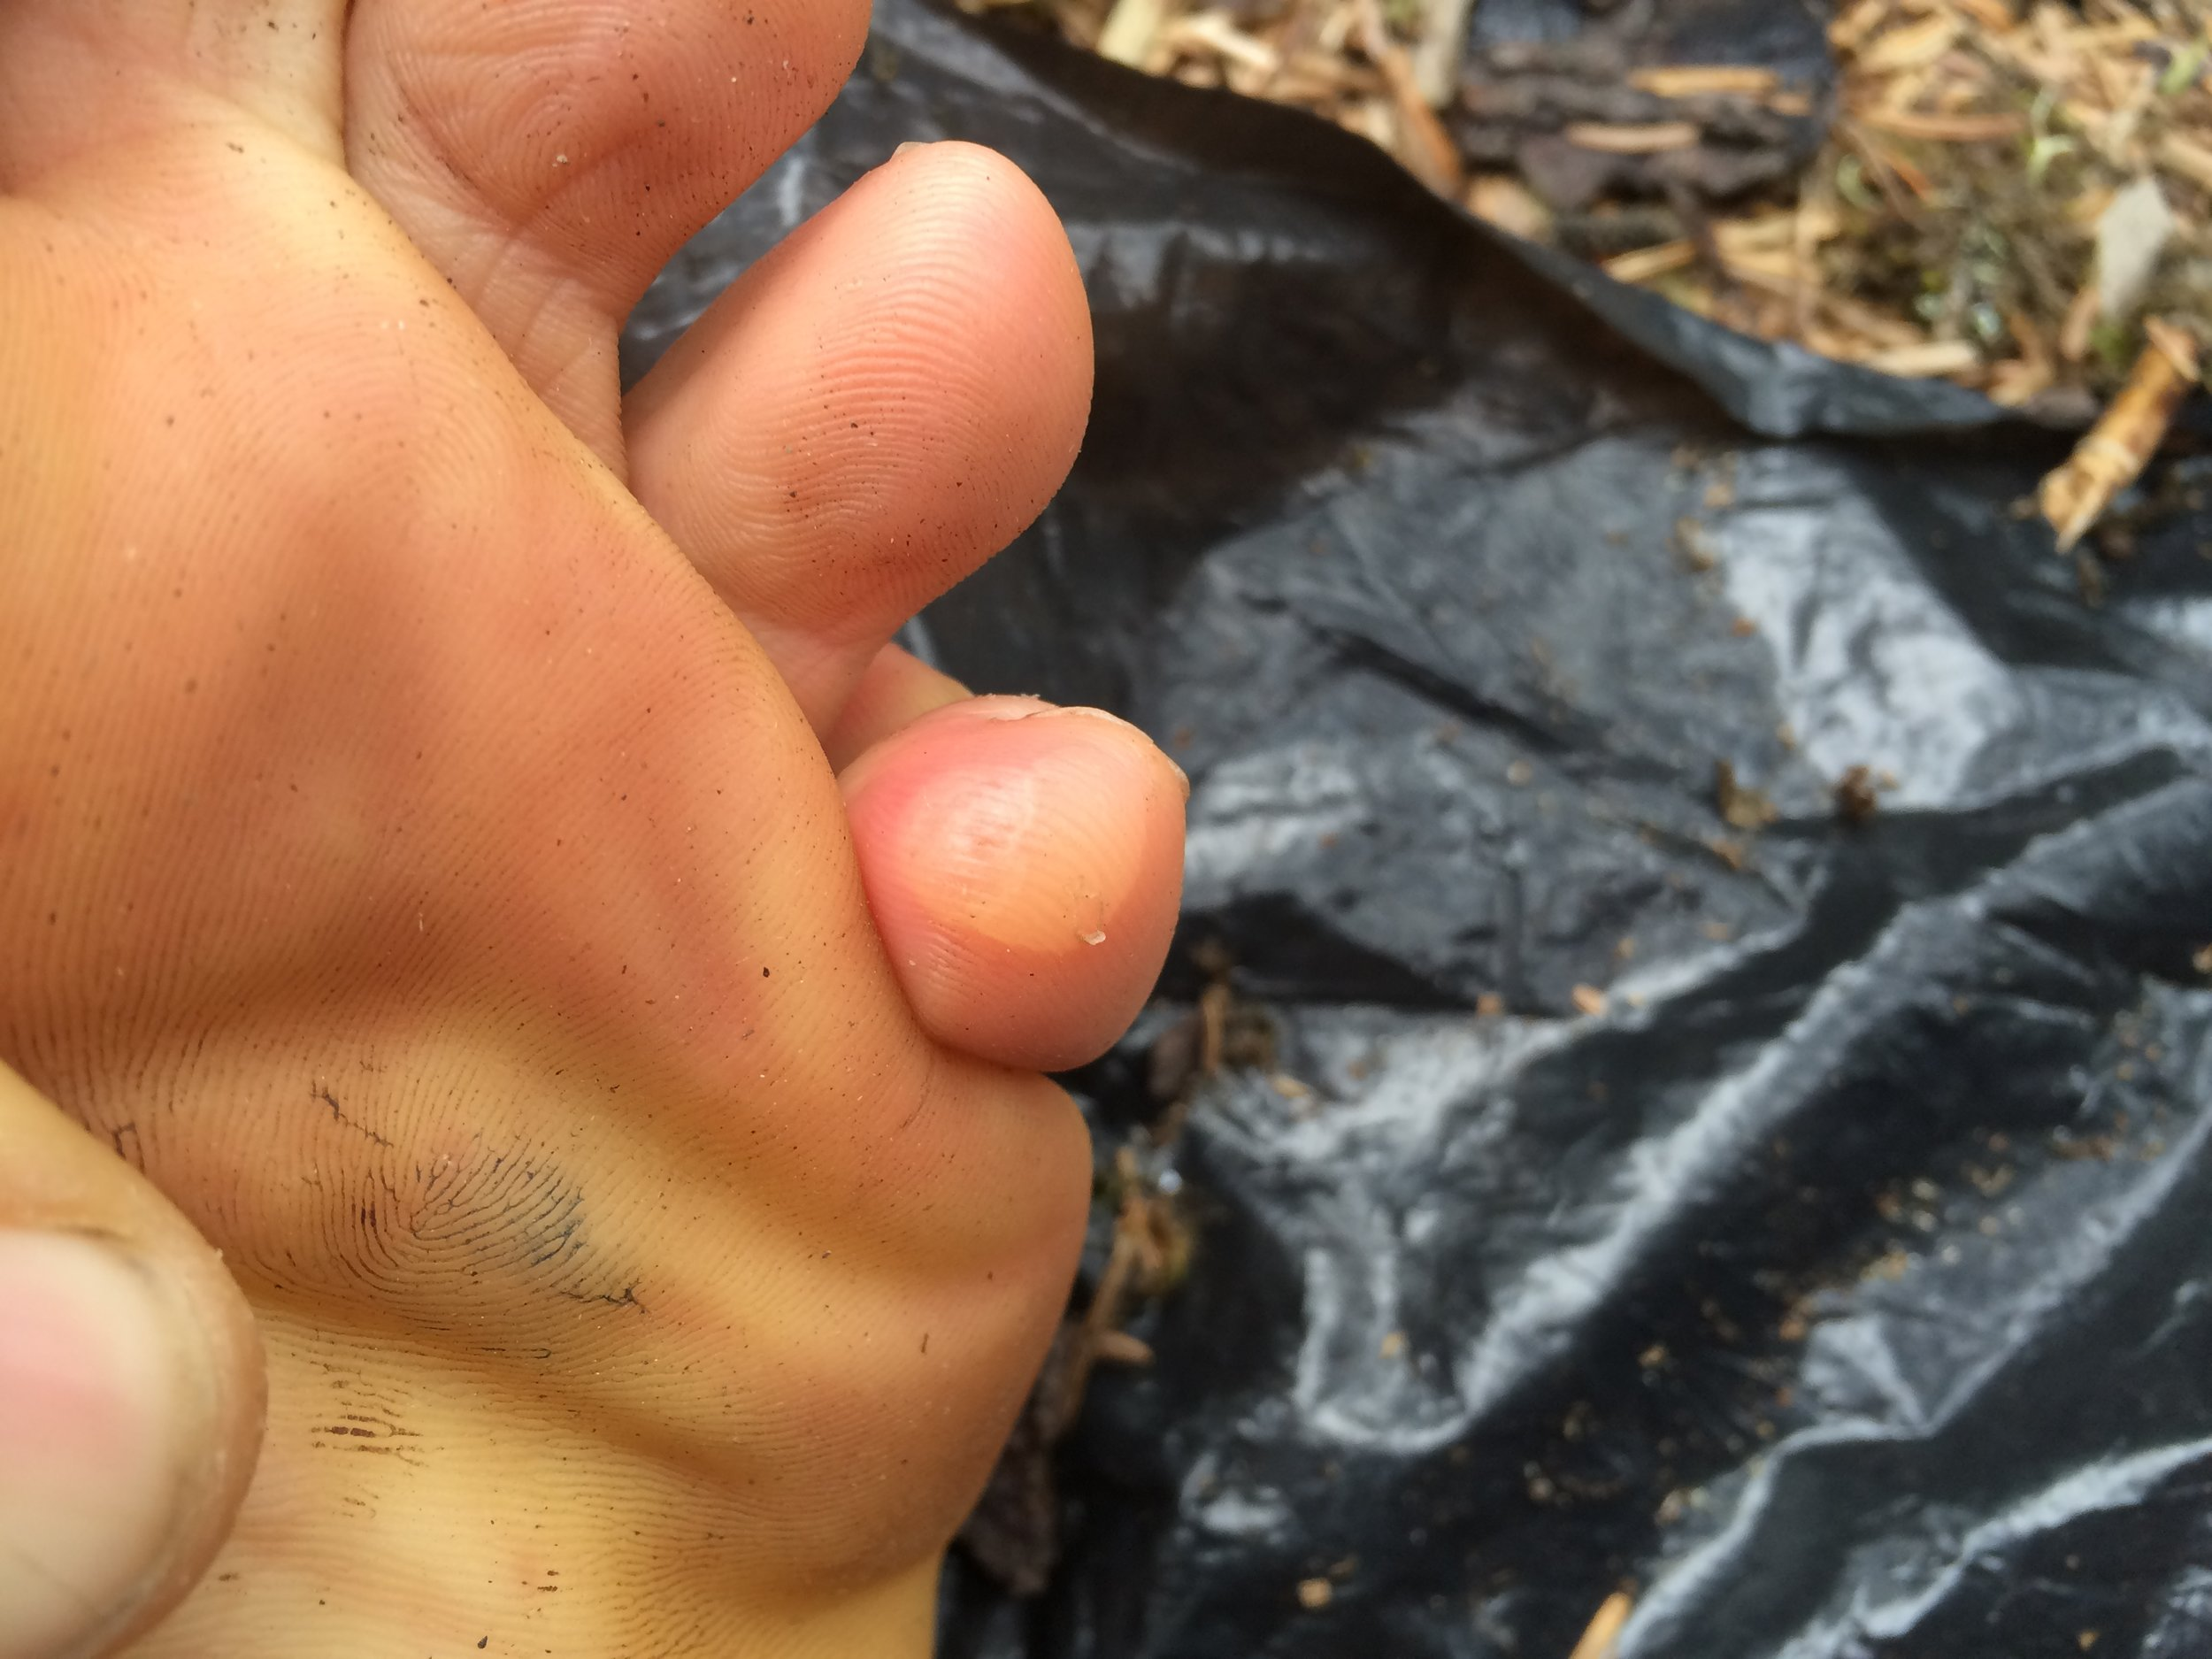 Blister within a blister